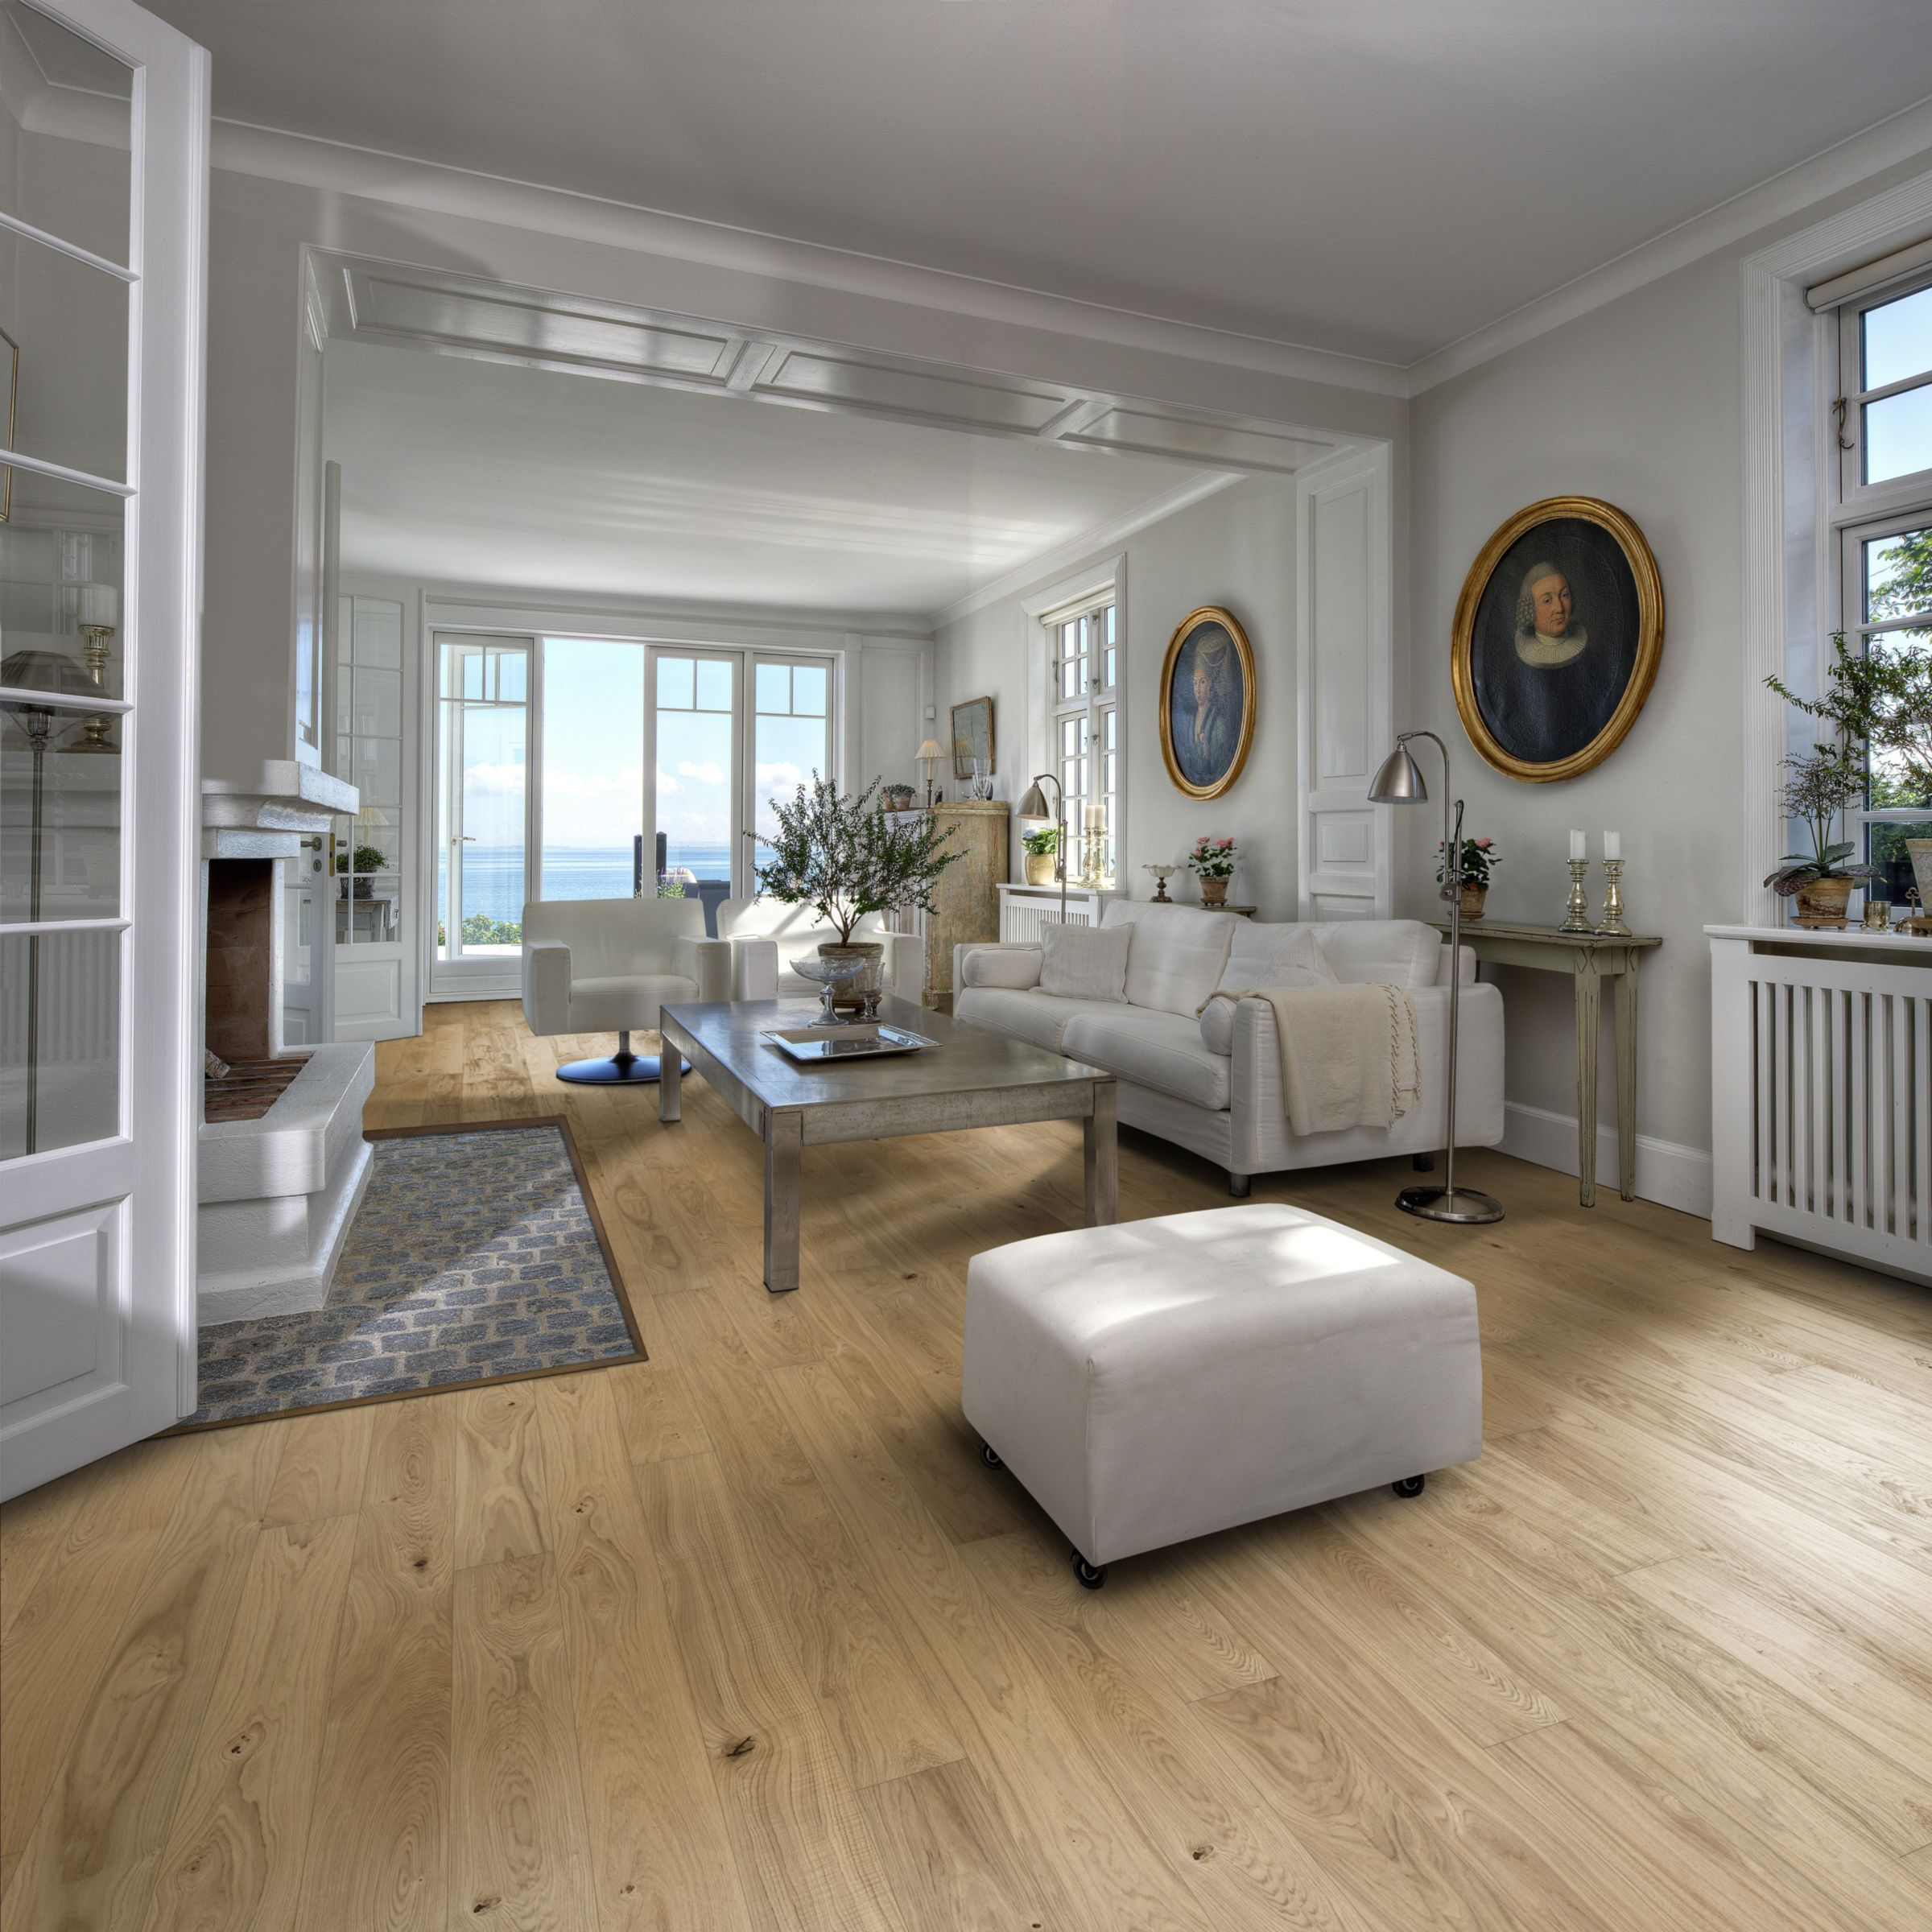 Kahrs European Naturals Grey engineered wood flooring